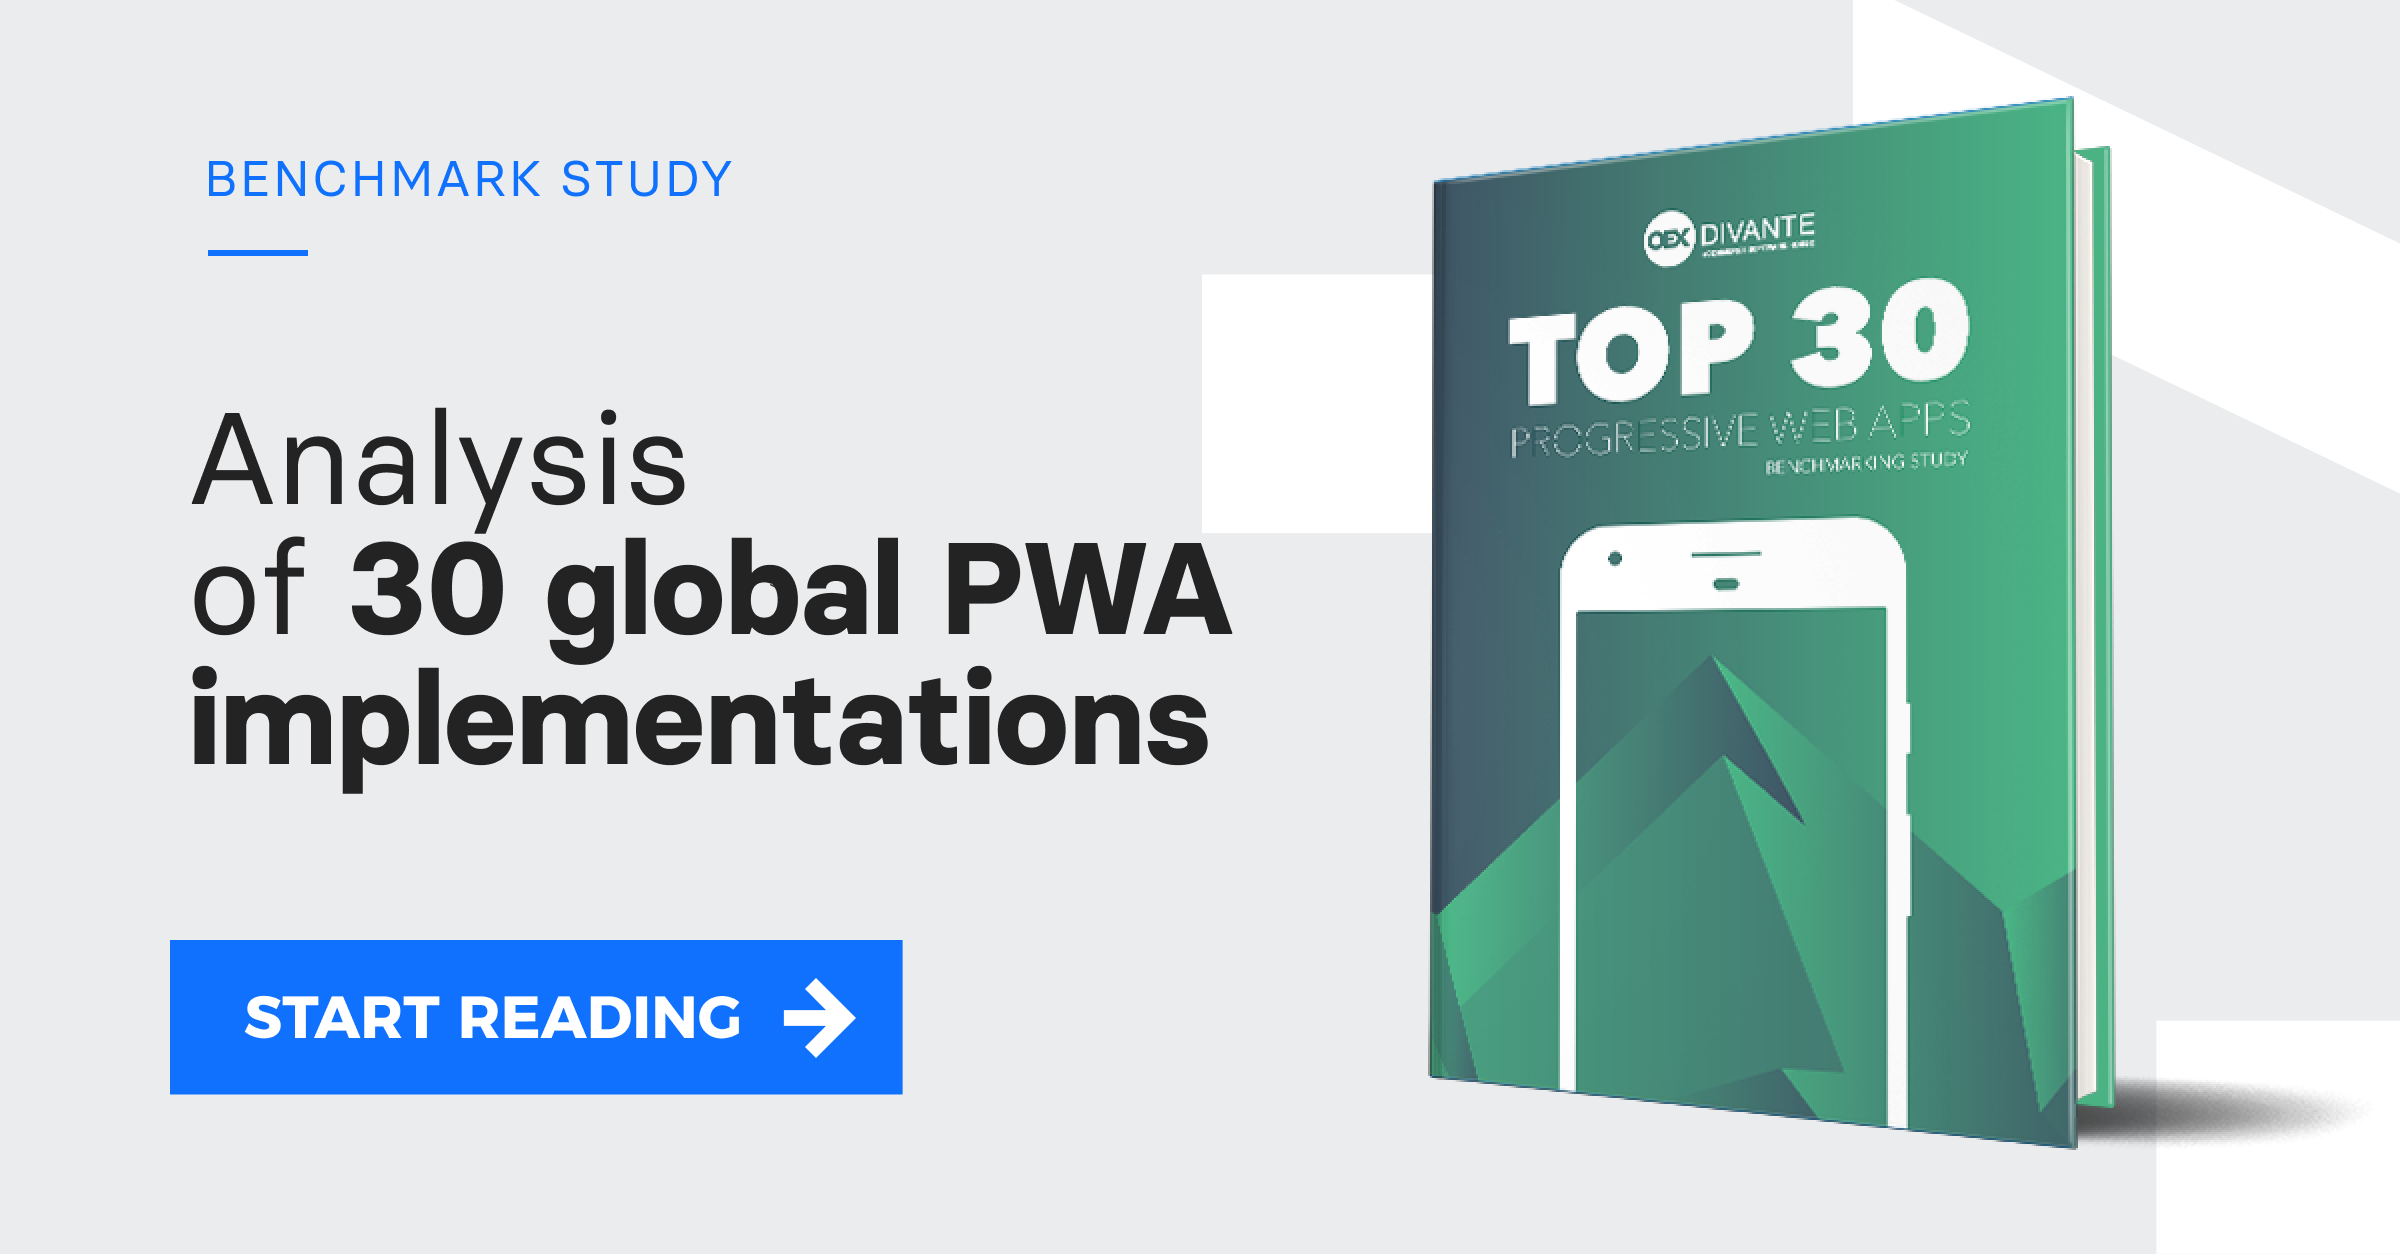 TOP 30 PWAs - Download FREE Benchmarking Study